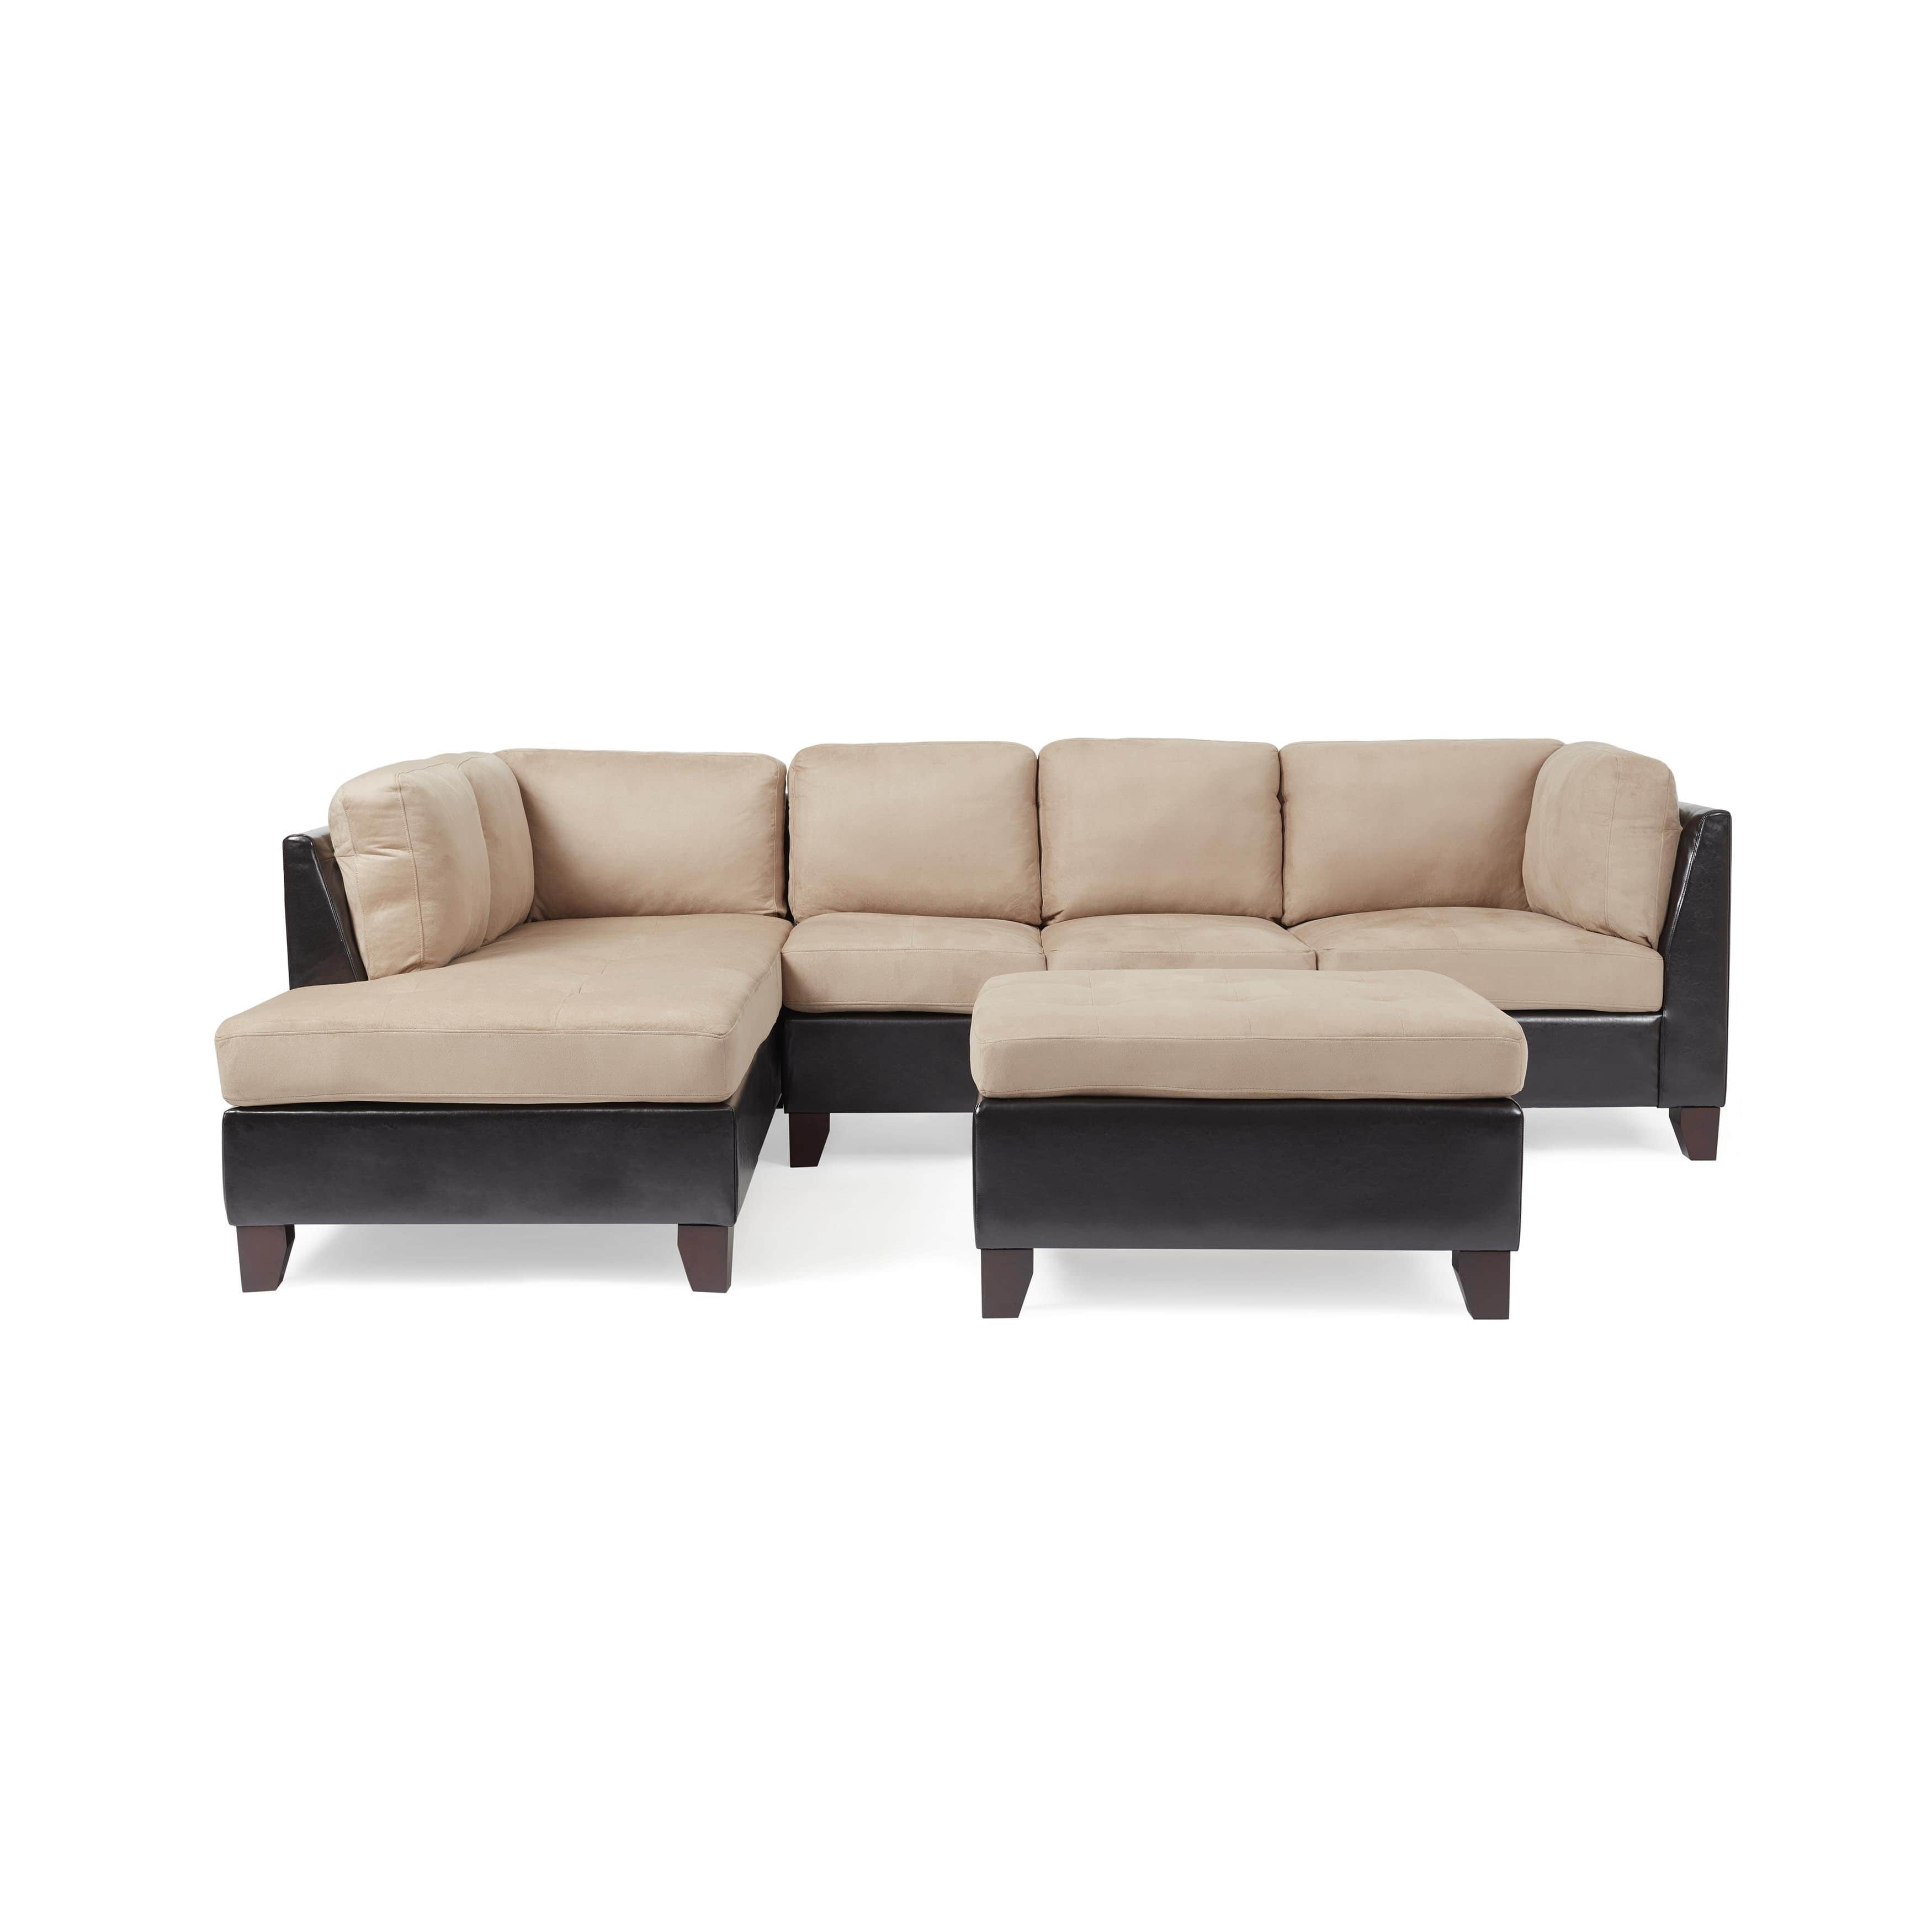 Abbyson Charlotte Beige Sectional Sofa And Ottoman – Free Shipping Pertaining To Charlotte Sectional Sofas (View 9 of 10)